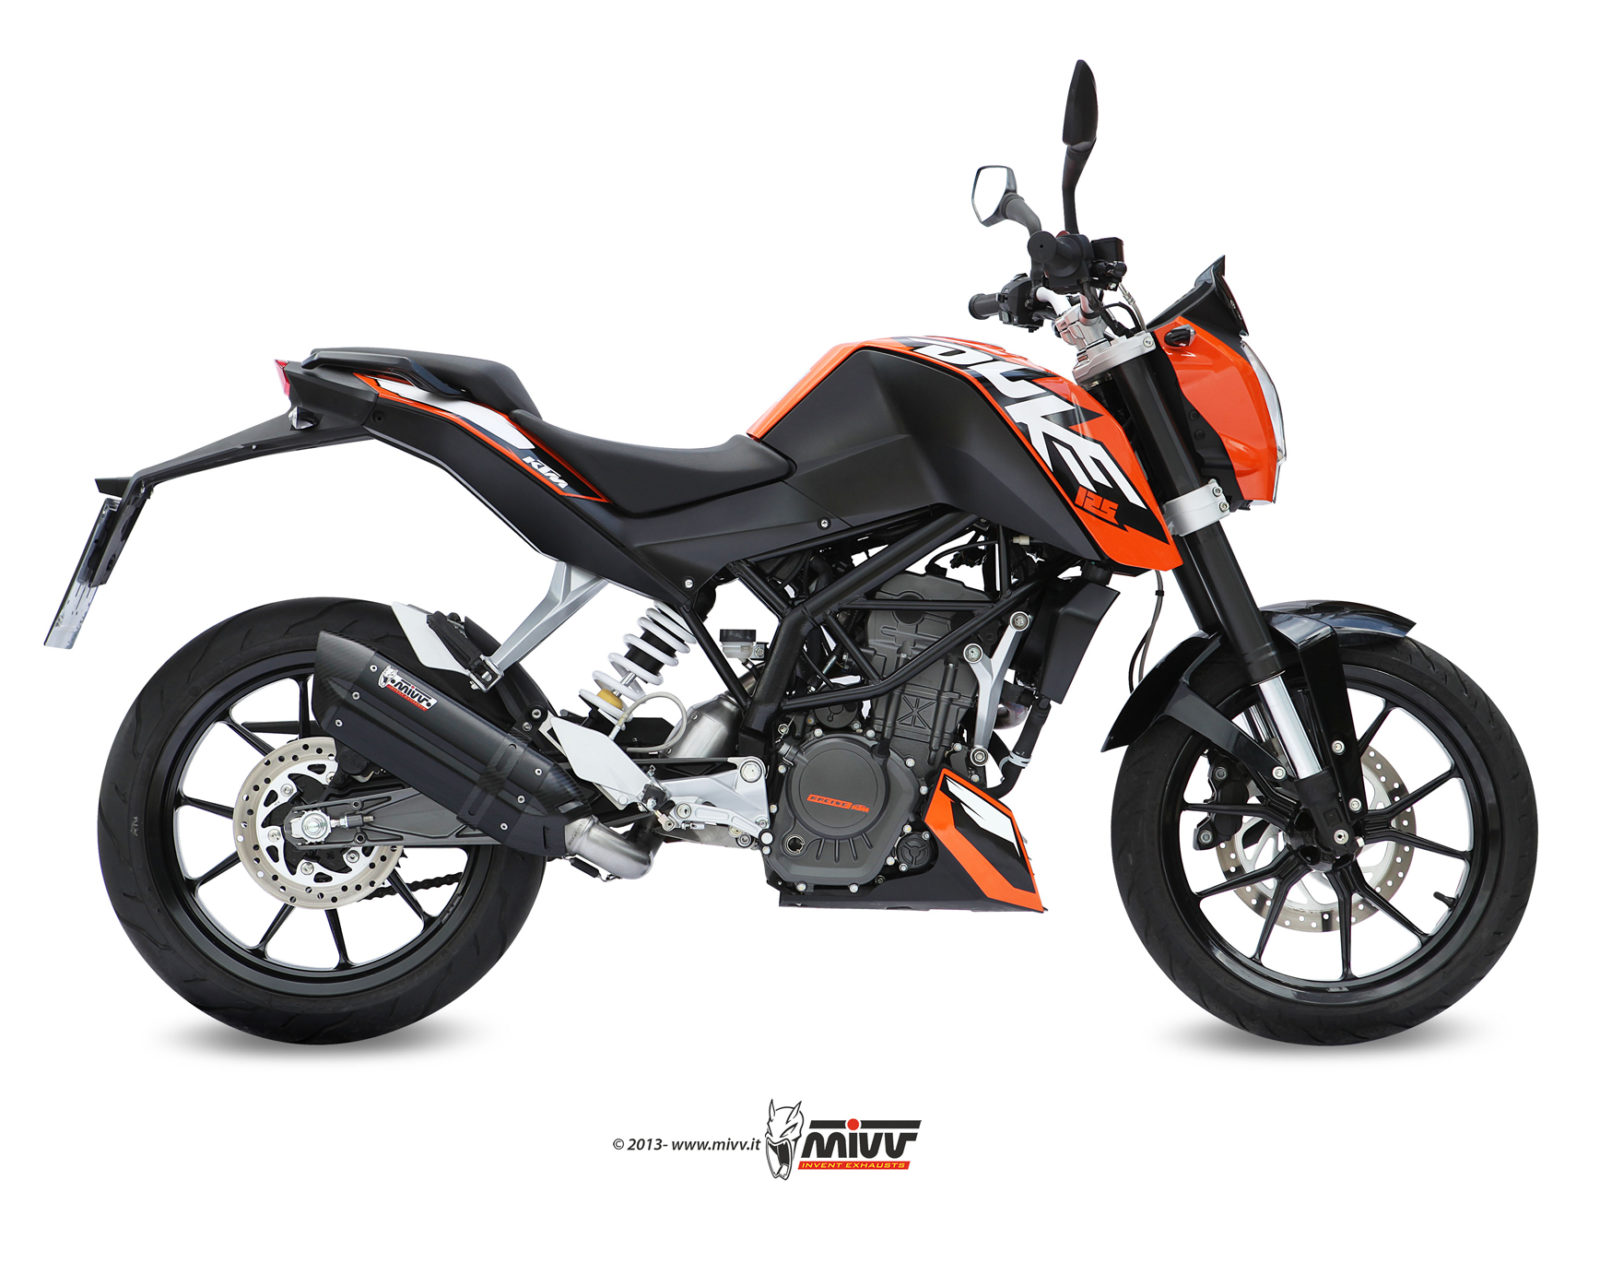 KTM 125 DUKE Exhaust Mivv Suono Black stainless steel KT.009.L9